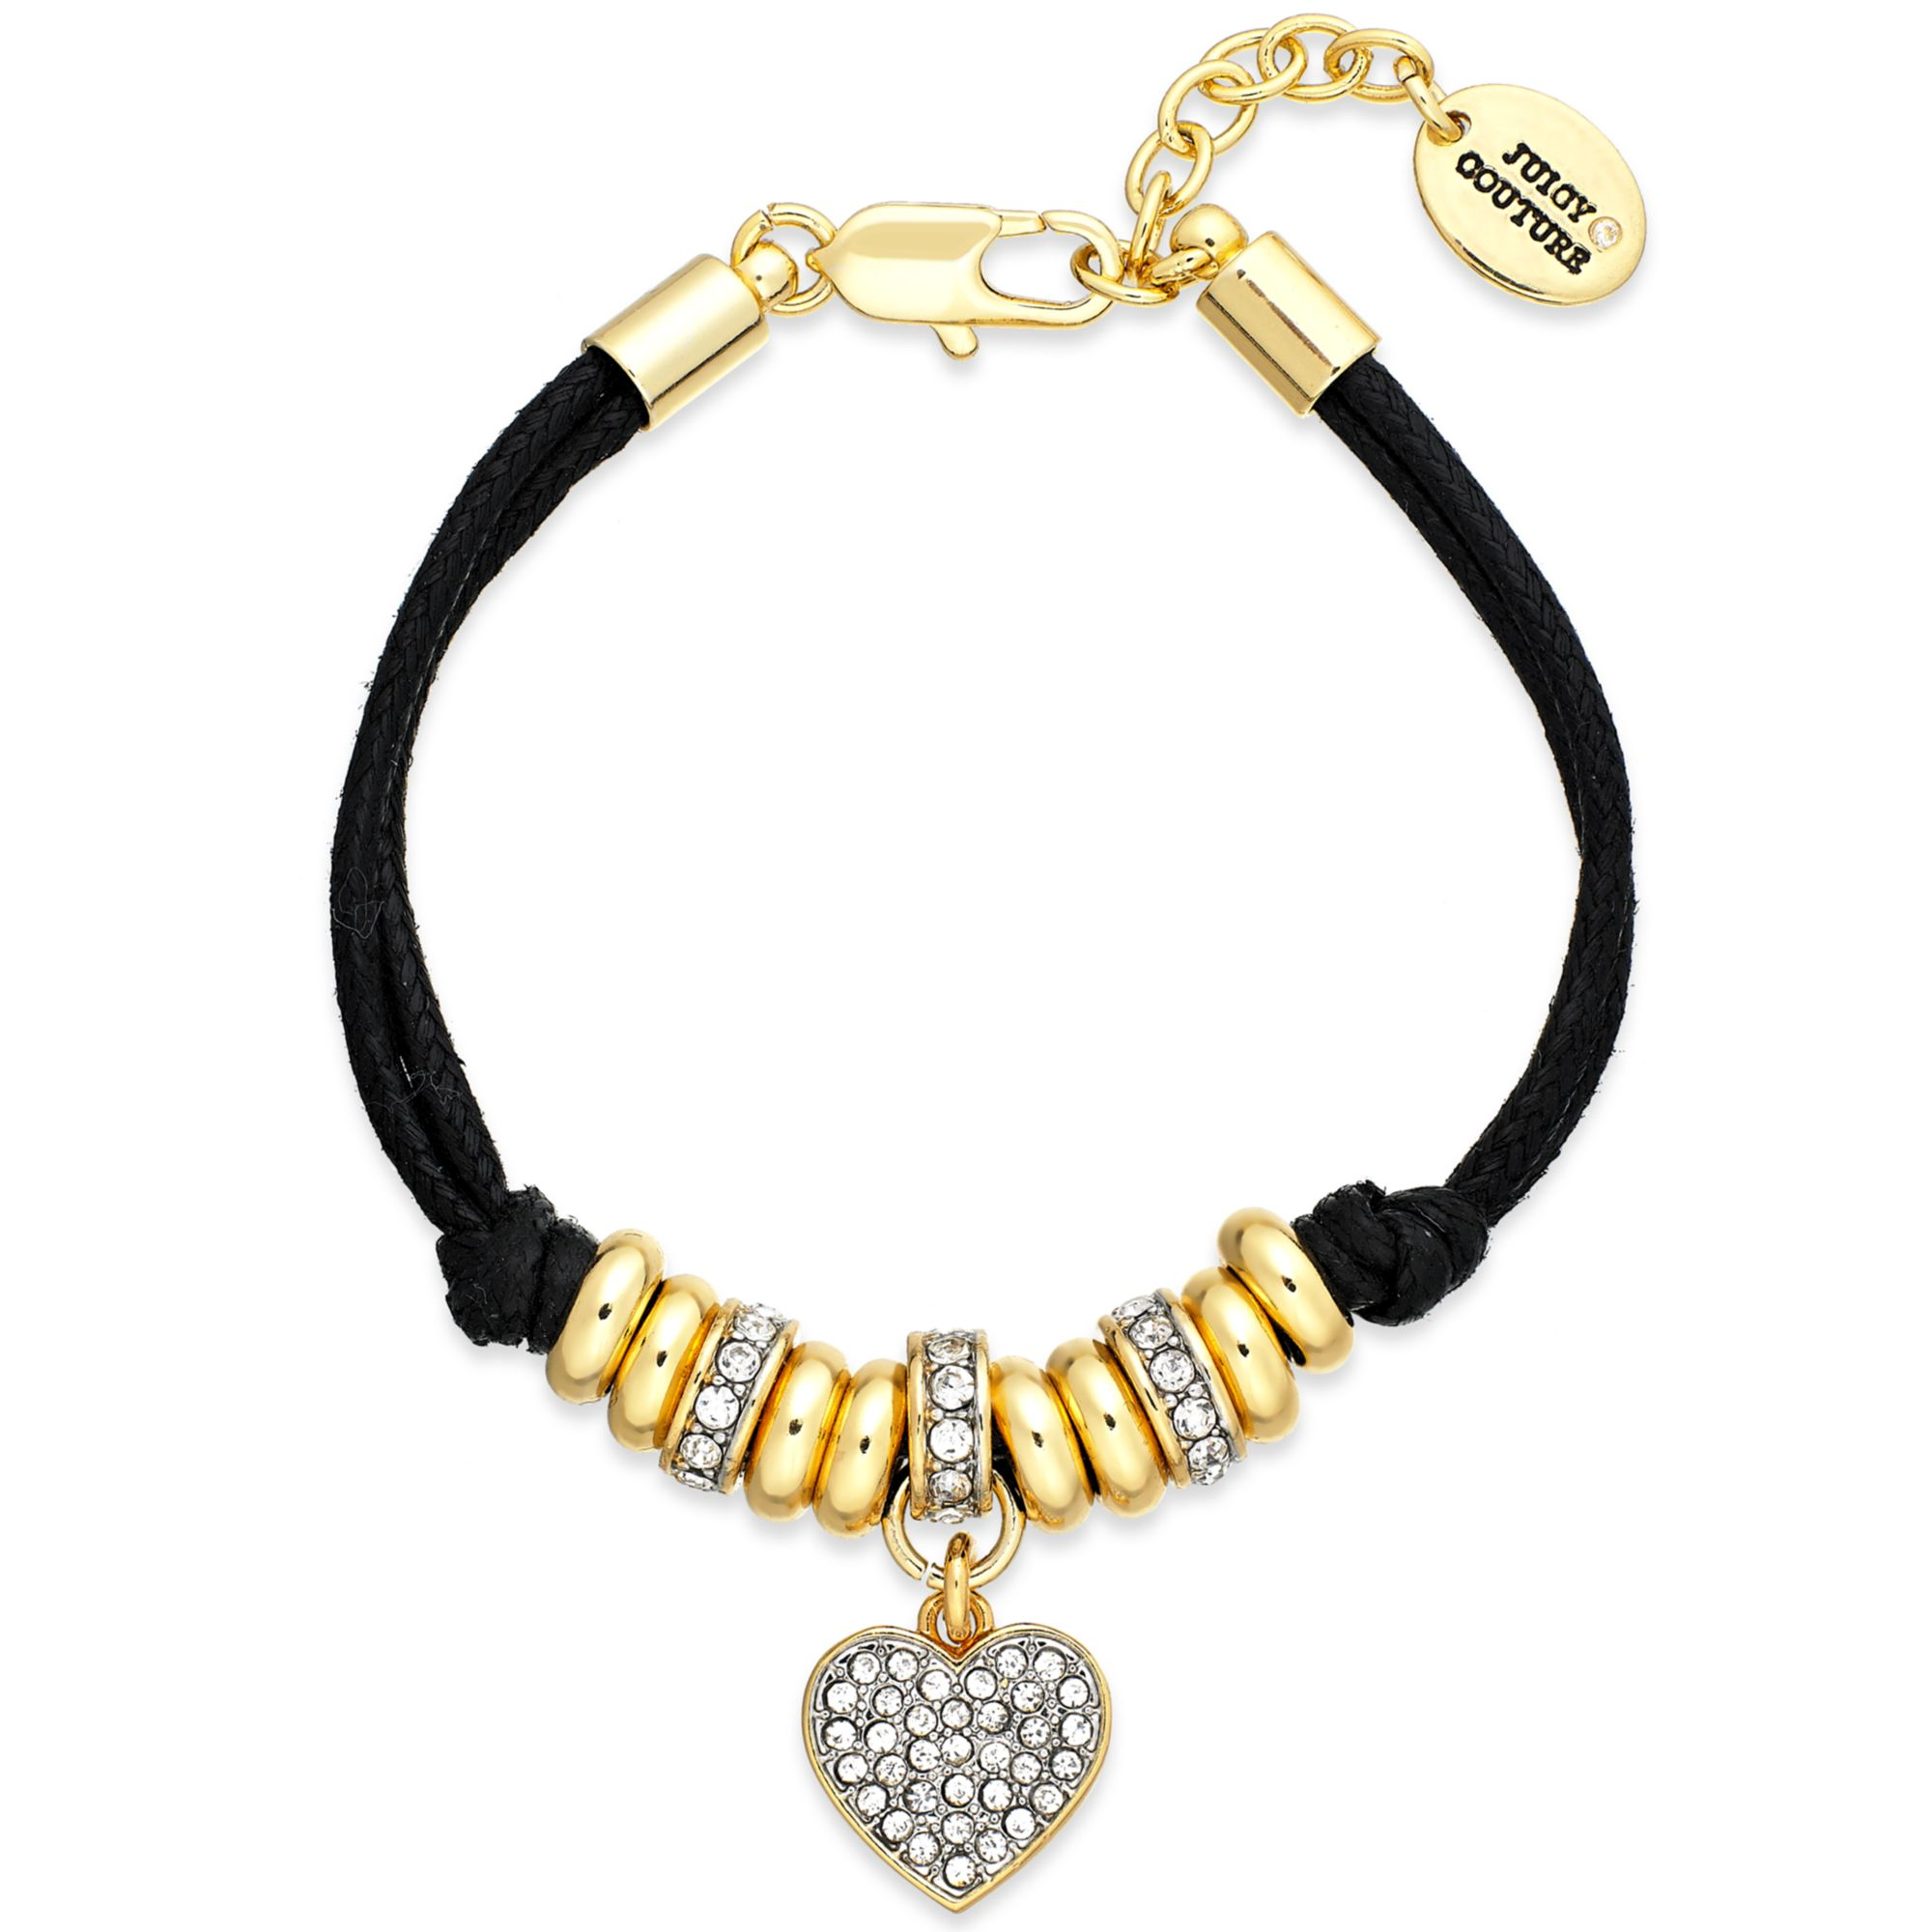 lyst black no bracelet couture heart product corded in color juicy jewelry gallery goldtone pave